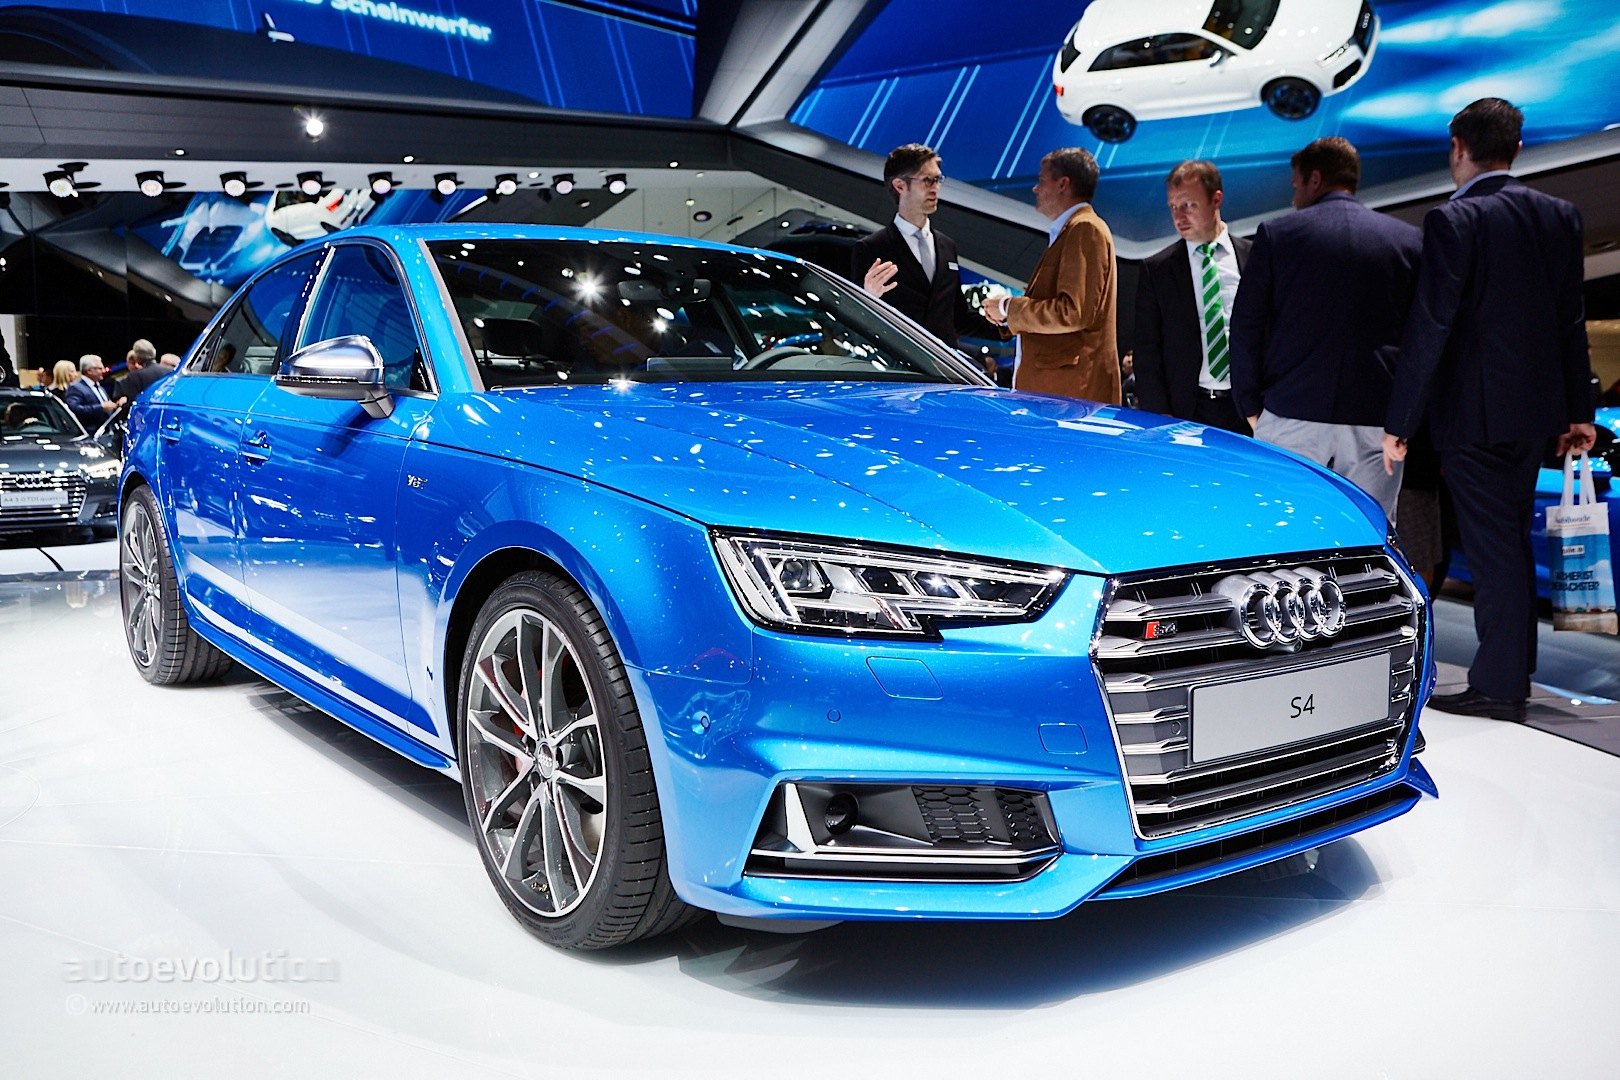 2018 Audi S4 Specs And Pricing Announced In The Us 0 To 60 4 Seconds